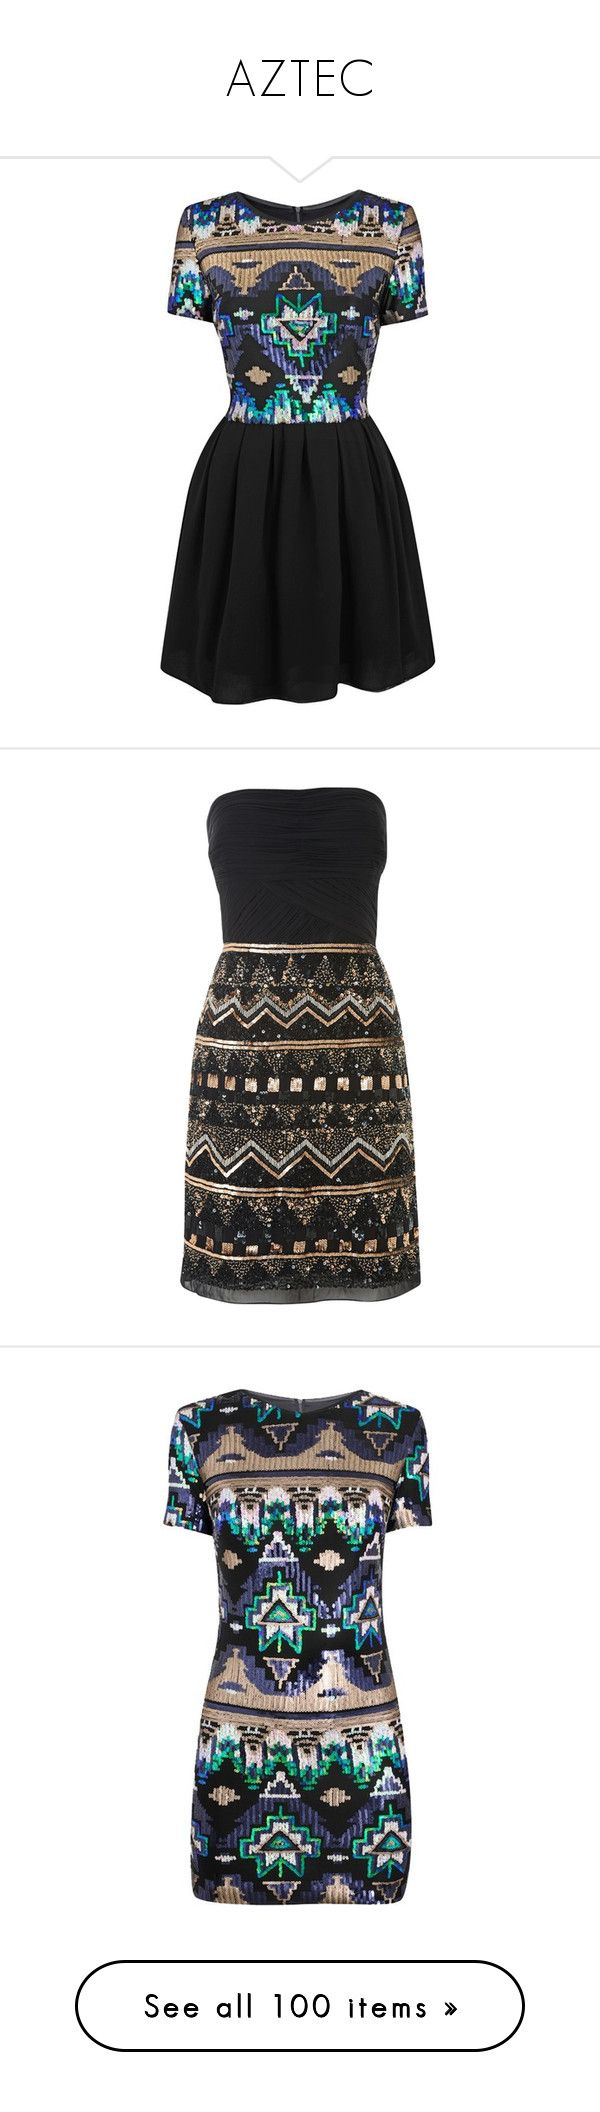 """AZTEC"" by shoppings9 ❤ liked on Polyvore featuring dresses, vestidos, aztec pattern dress, aztec skater dress, sequin embellished dress, aztec dresses, aztec-print dresses, robe, short dresses and black gold"